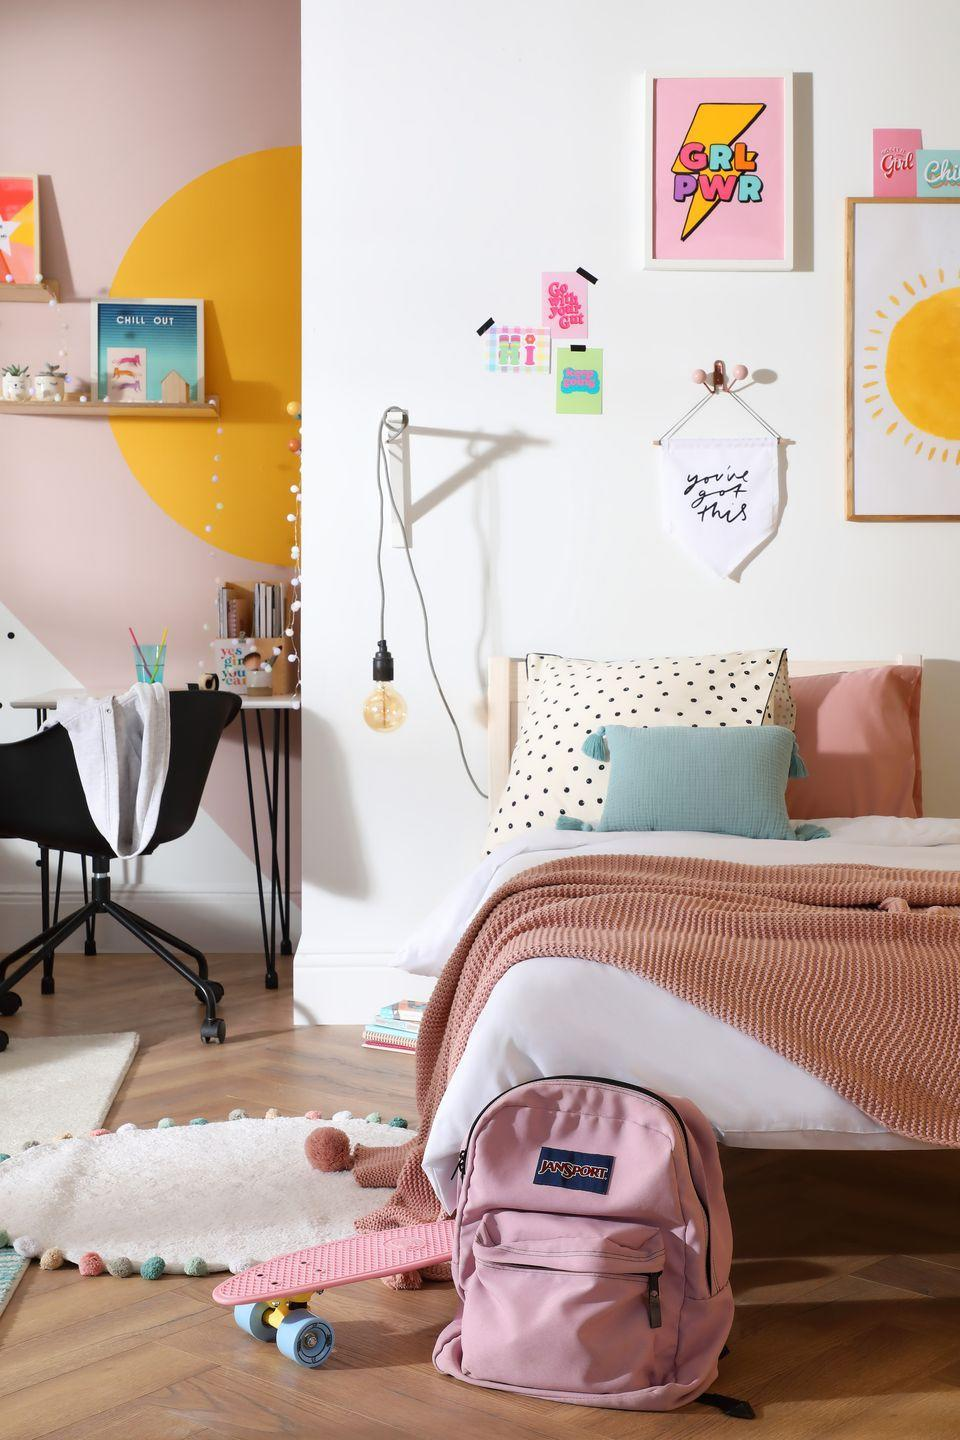 """<p>With home schooling coming to the fore during the pandemic, finding a suitable desk space to do school and homework has become ever so important. While the bed is against the white wall, the room is zoned to create a separate area workspace. A pink and white colour scheme with a yellow semicircle brings personality to this girls bedroom.</p><p>Pictured: Rio White Washed Single Bed, <a href=""""https://go.redirectingat.com?id=127X1599956&url=https%3A%2F%2Fwww.furniturechoice.co.uk%2Fbedroom%2Fbeds%2Frio-white-washed-single-bed_wb10000814&sref=https%3A%2F%2Fwww.housebeautiful.com%2Fuk%2Fdecorate%2Fbedroom%2Fg35589644%2Fgirls-bedroom-ideas%2F"""" rel=""""nofollow noopener"""" target=""""_blank"""" data-ylk=""""slk:Furniture and Choice"""" class=""""link rapid-noclick-resp"""">Furniture and Choice</a></p>"""